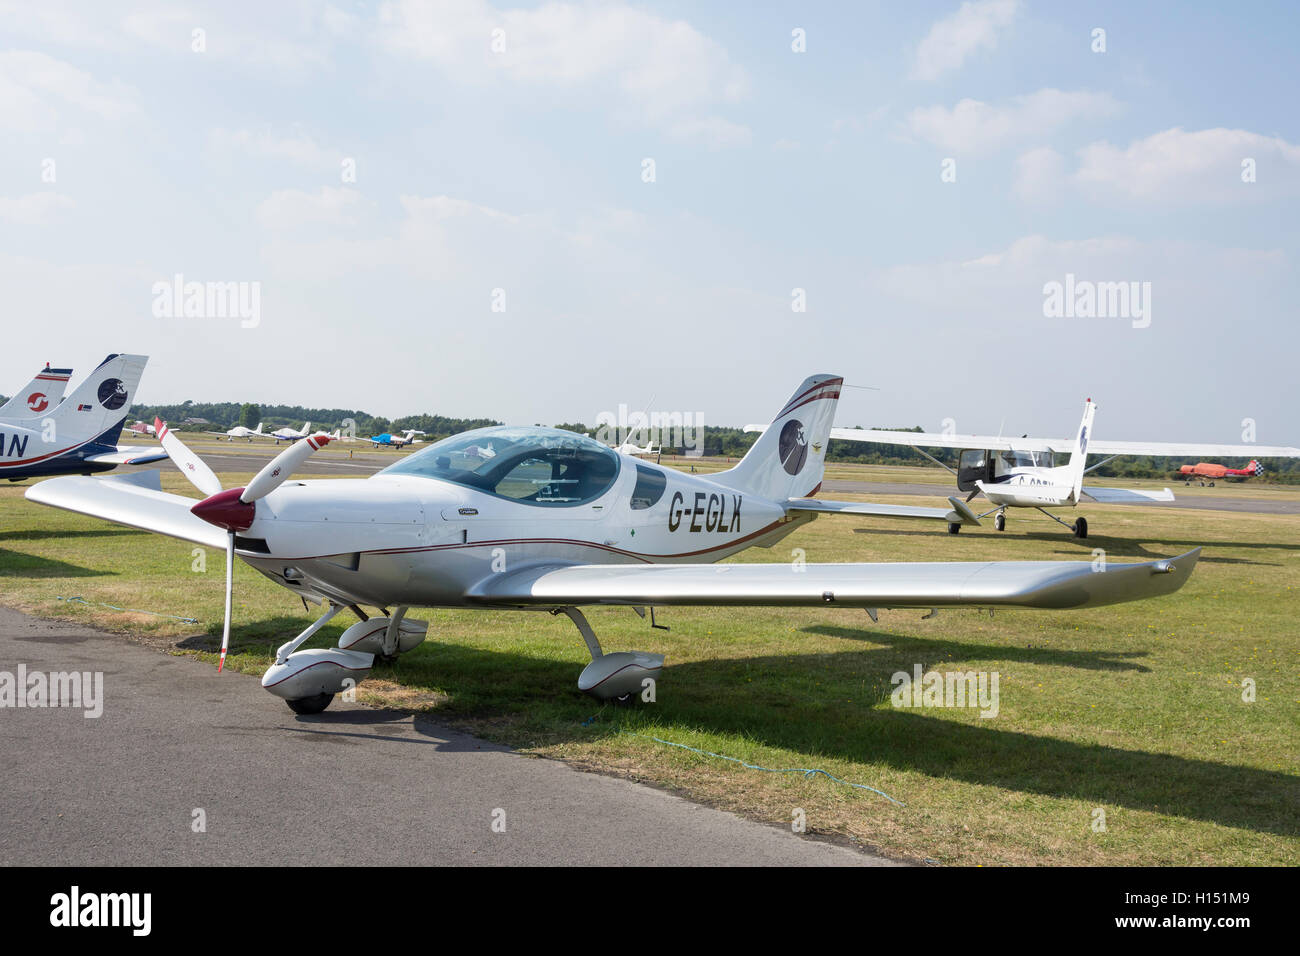 Czech Sport PS-28 Cruiser aircraft at Blackbushe Airport, London Road, Blackwater, Hampshire, England, United Kingdom - Stock Image